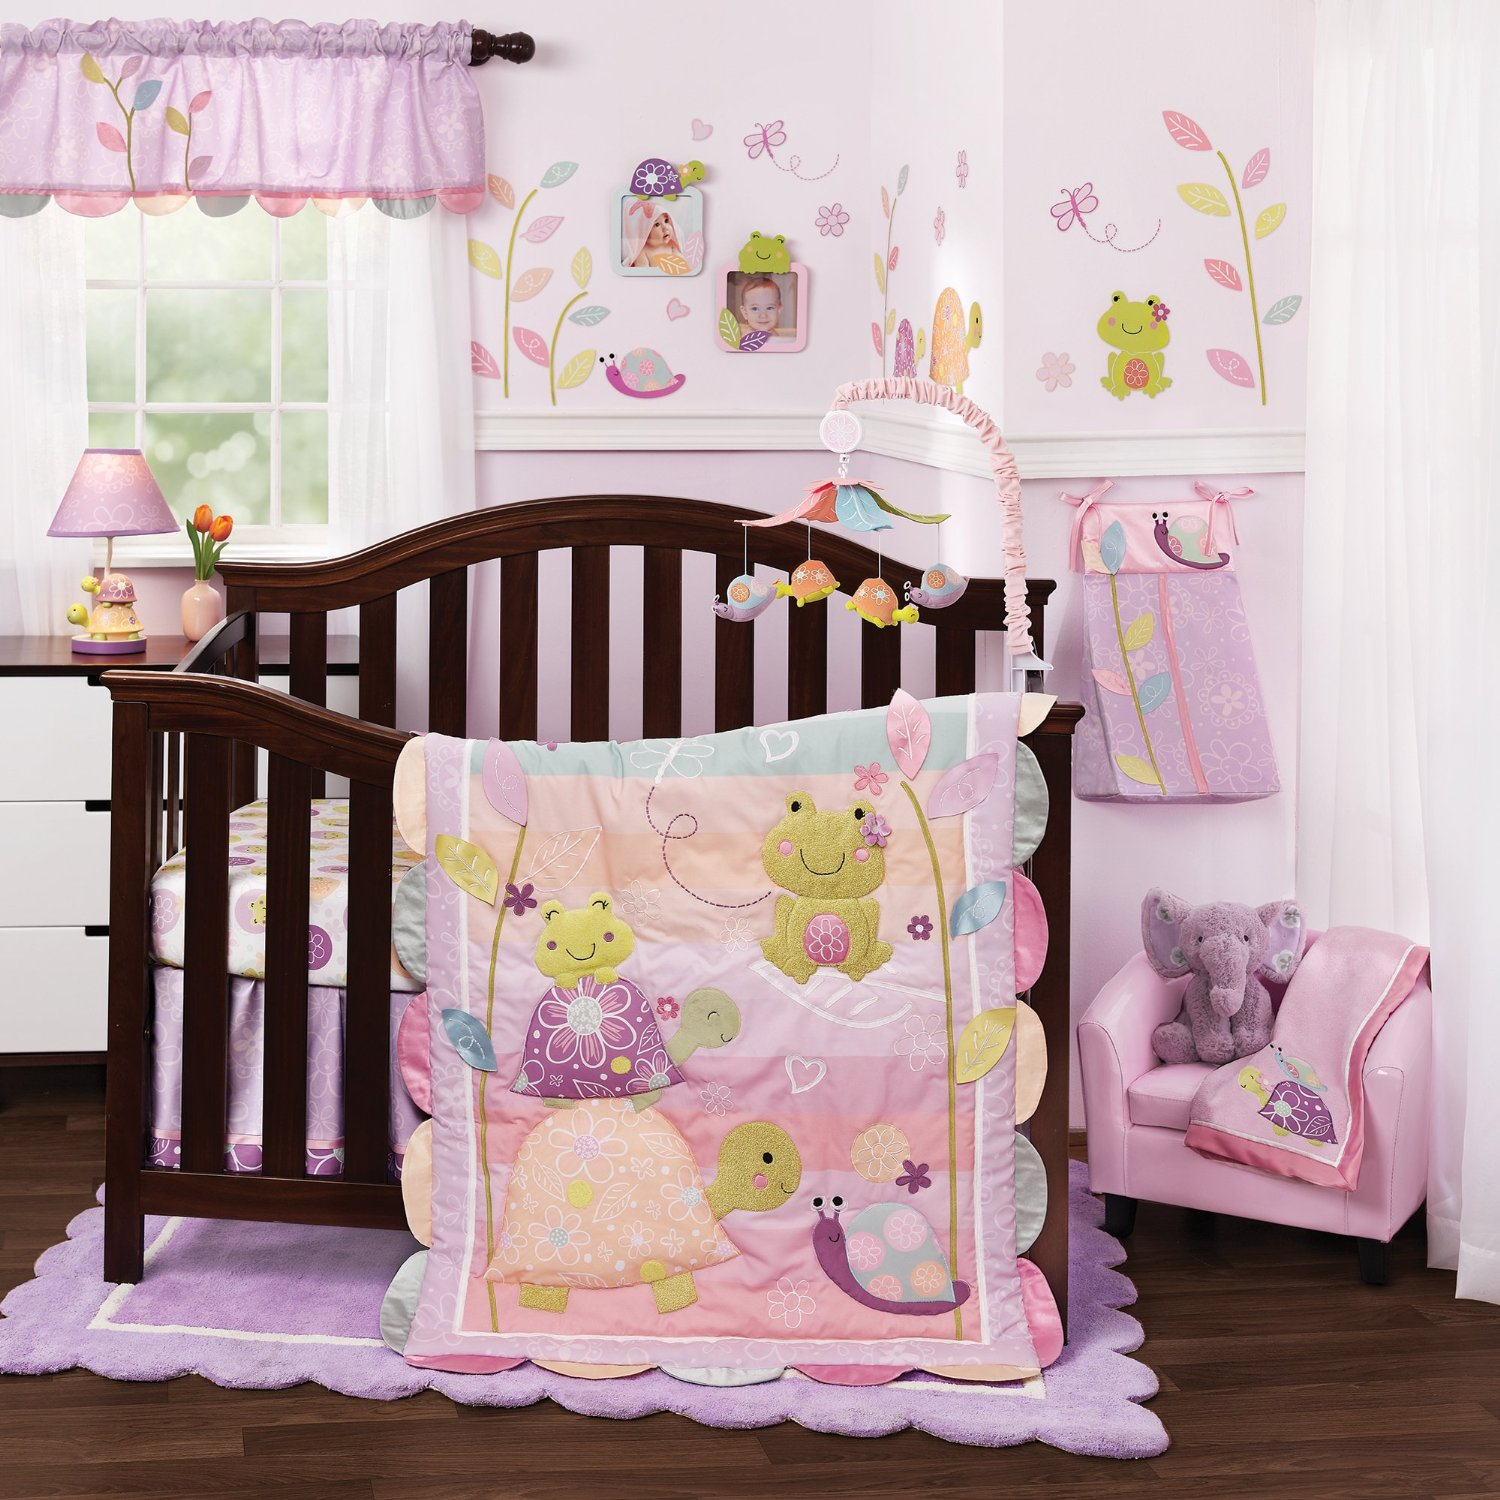 lambs and ivy puddles baby bedding and nursery accessories baby